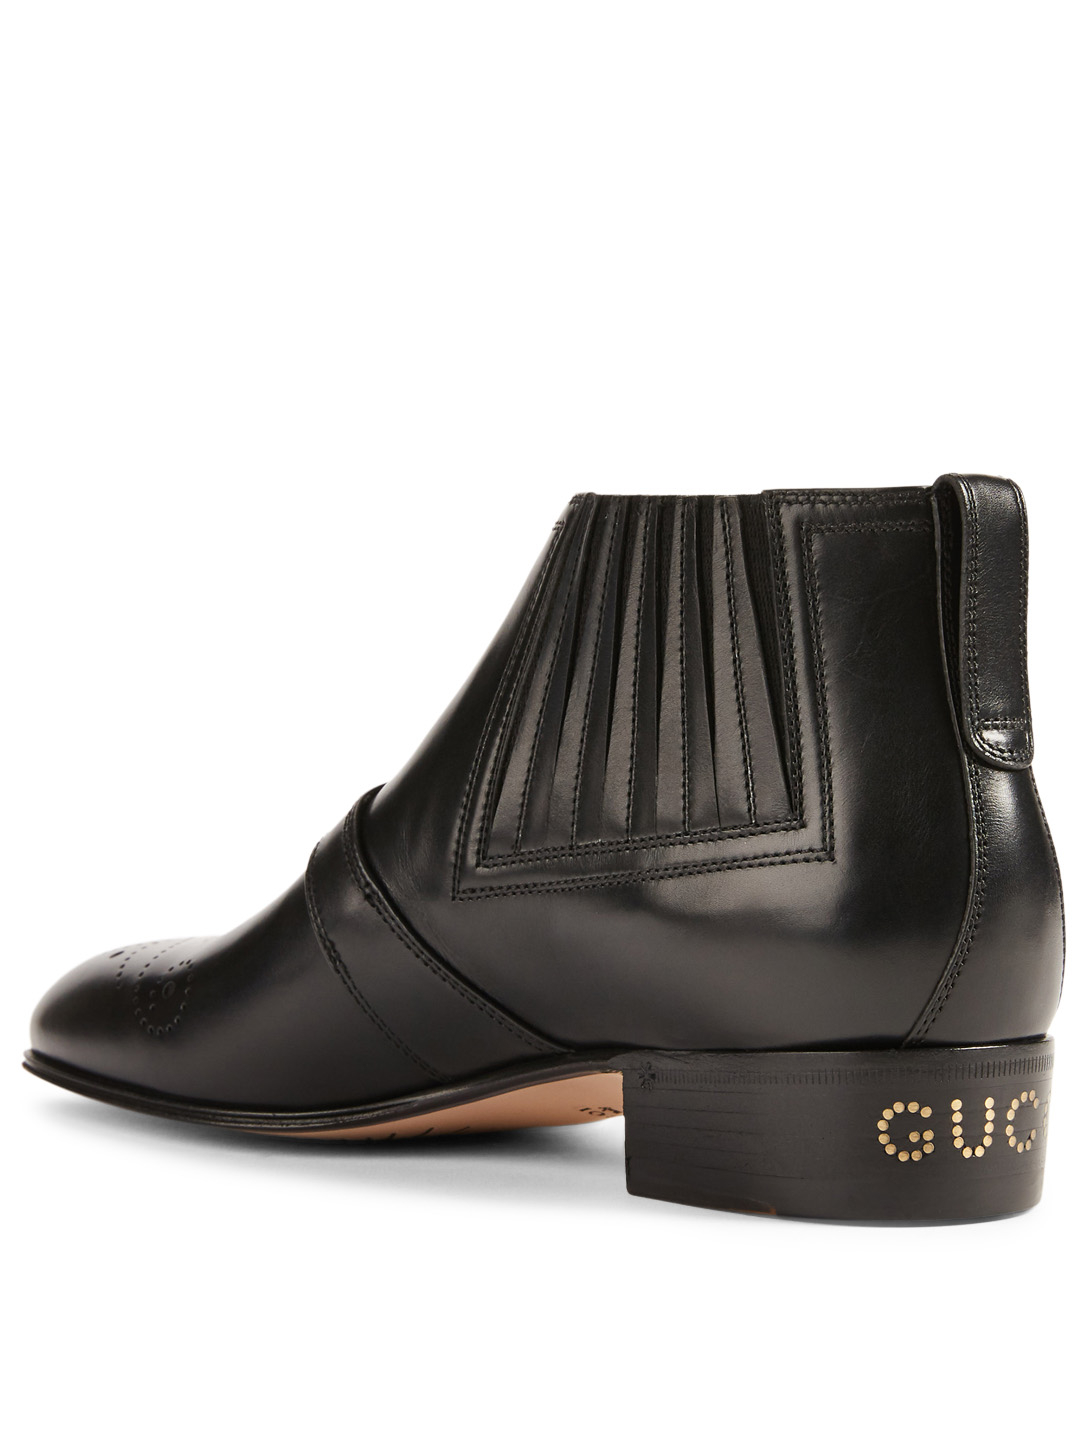 b5b705e49 ... GUCCI Leather Ankle Boots With G Brogue Women's Black ...